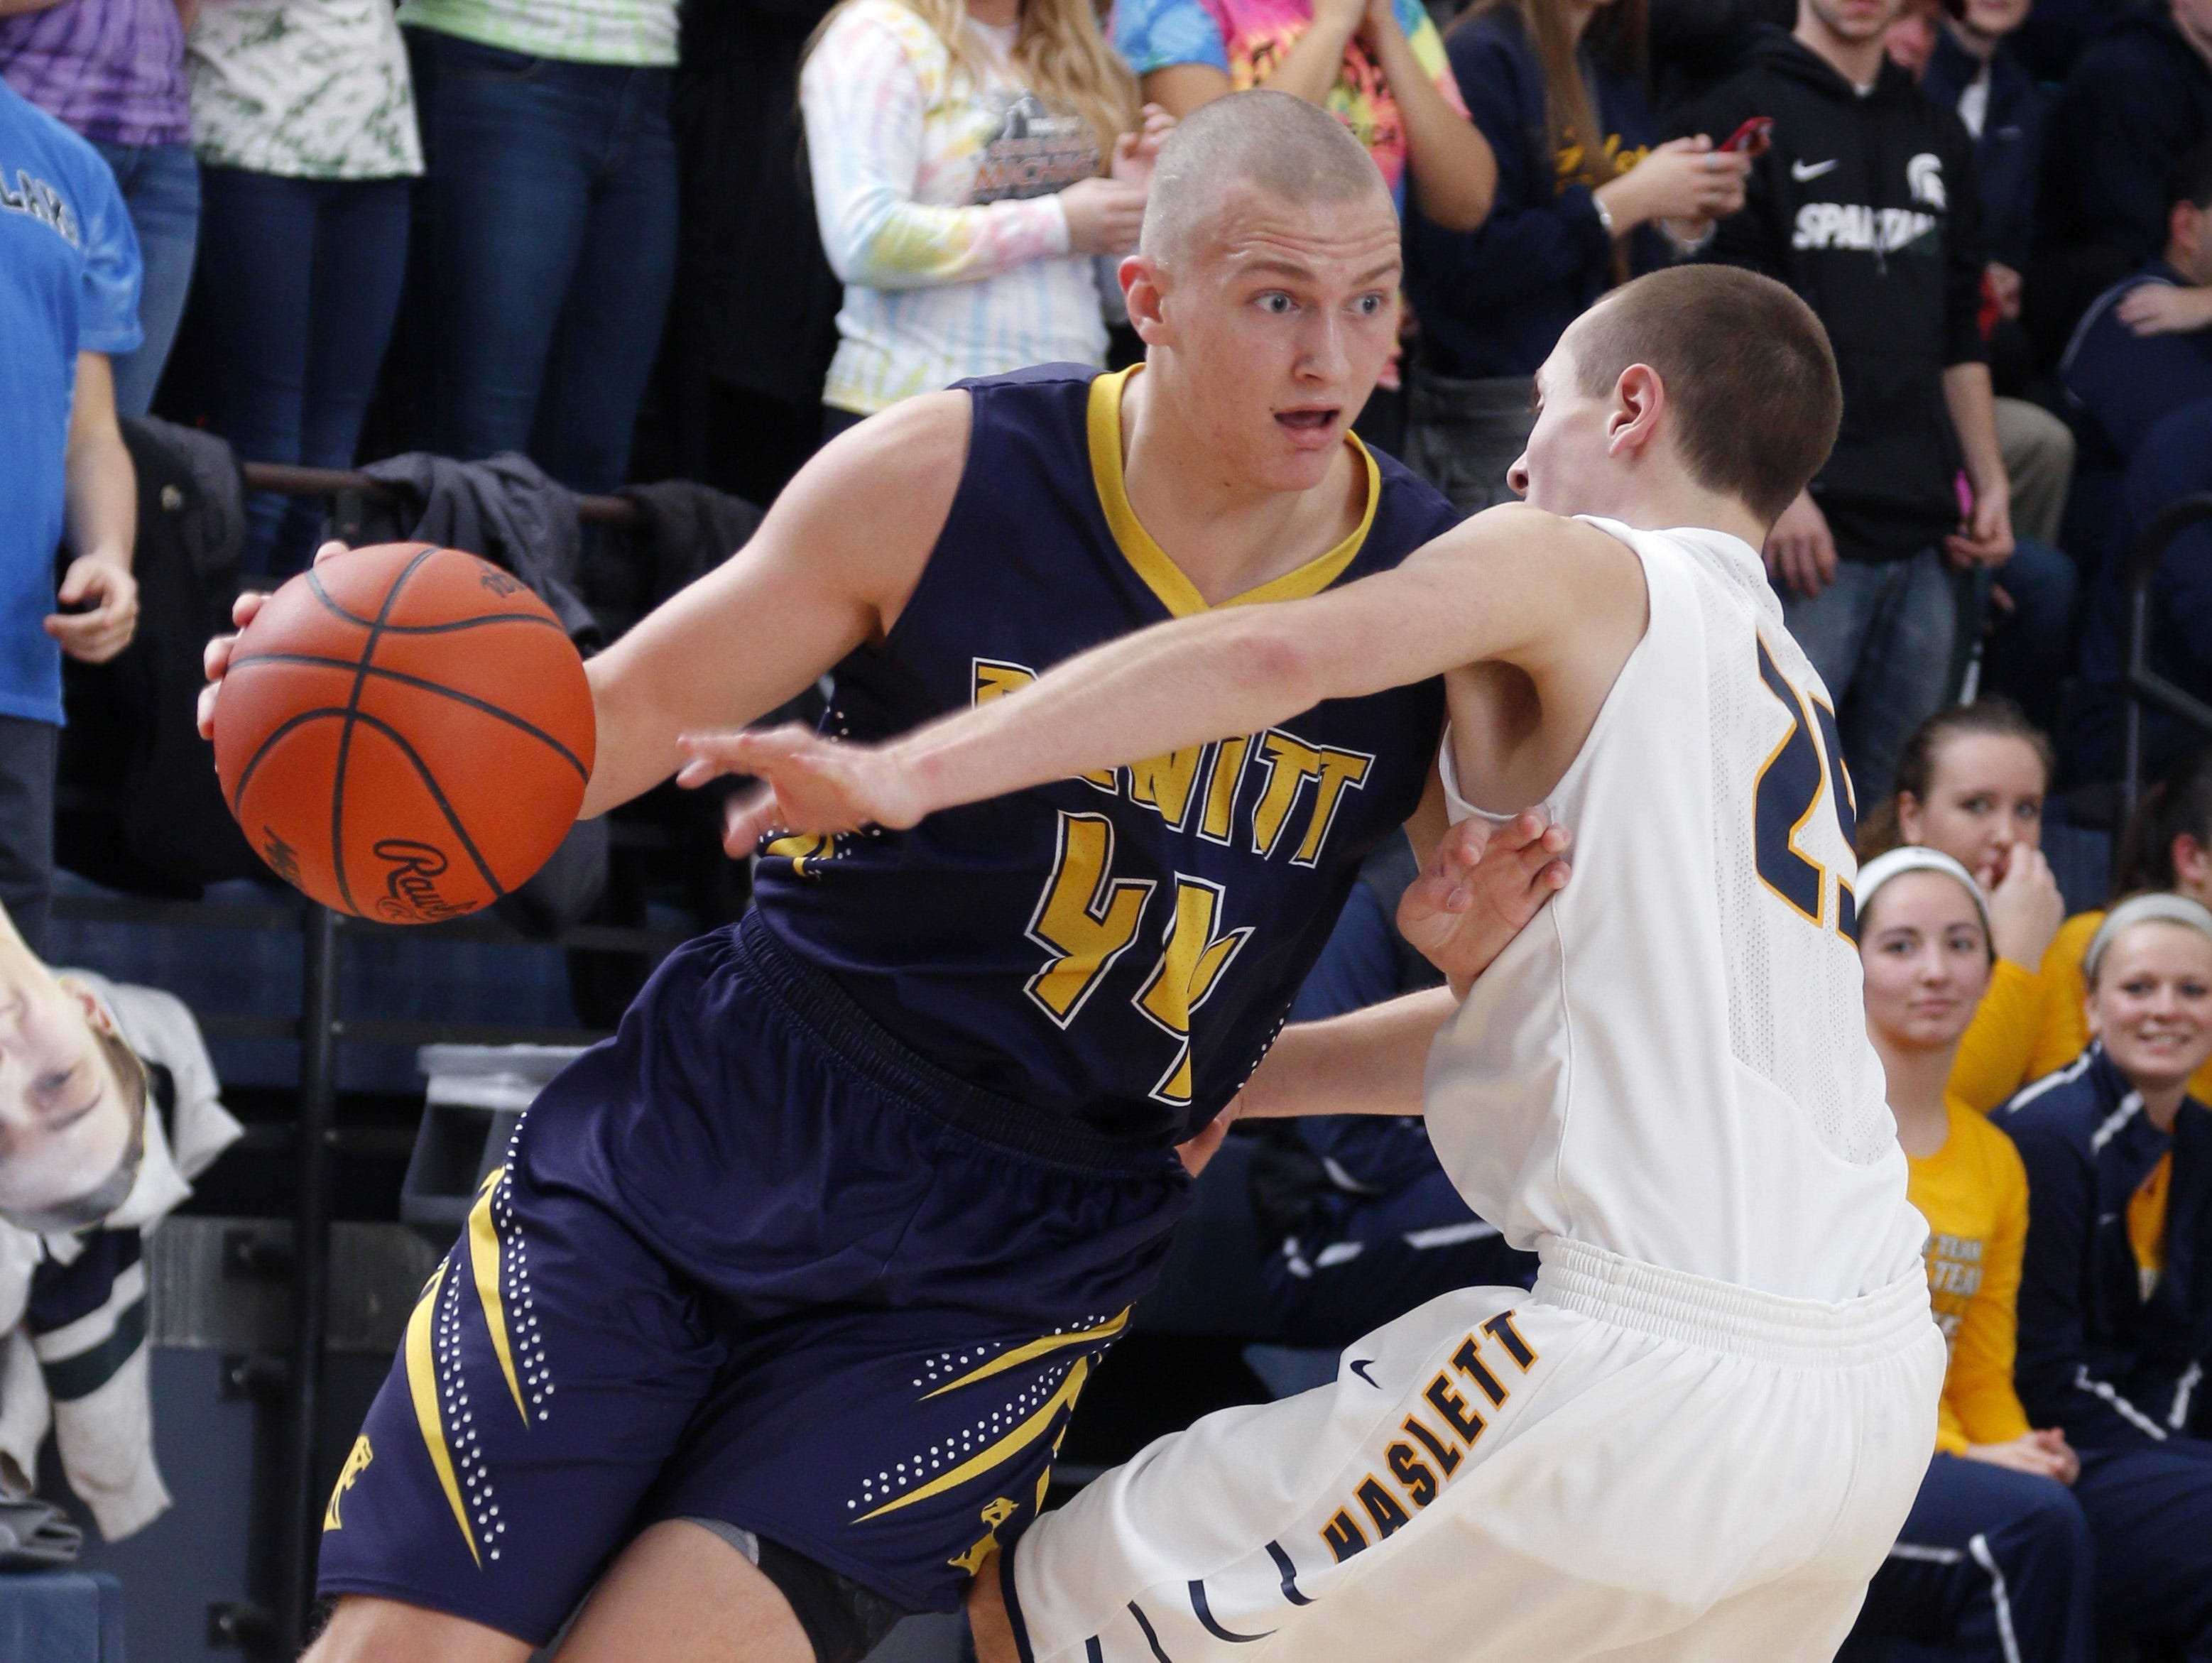 Tanner Reha is the top returning scorer for defending CAAC Red champion DeWitt.